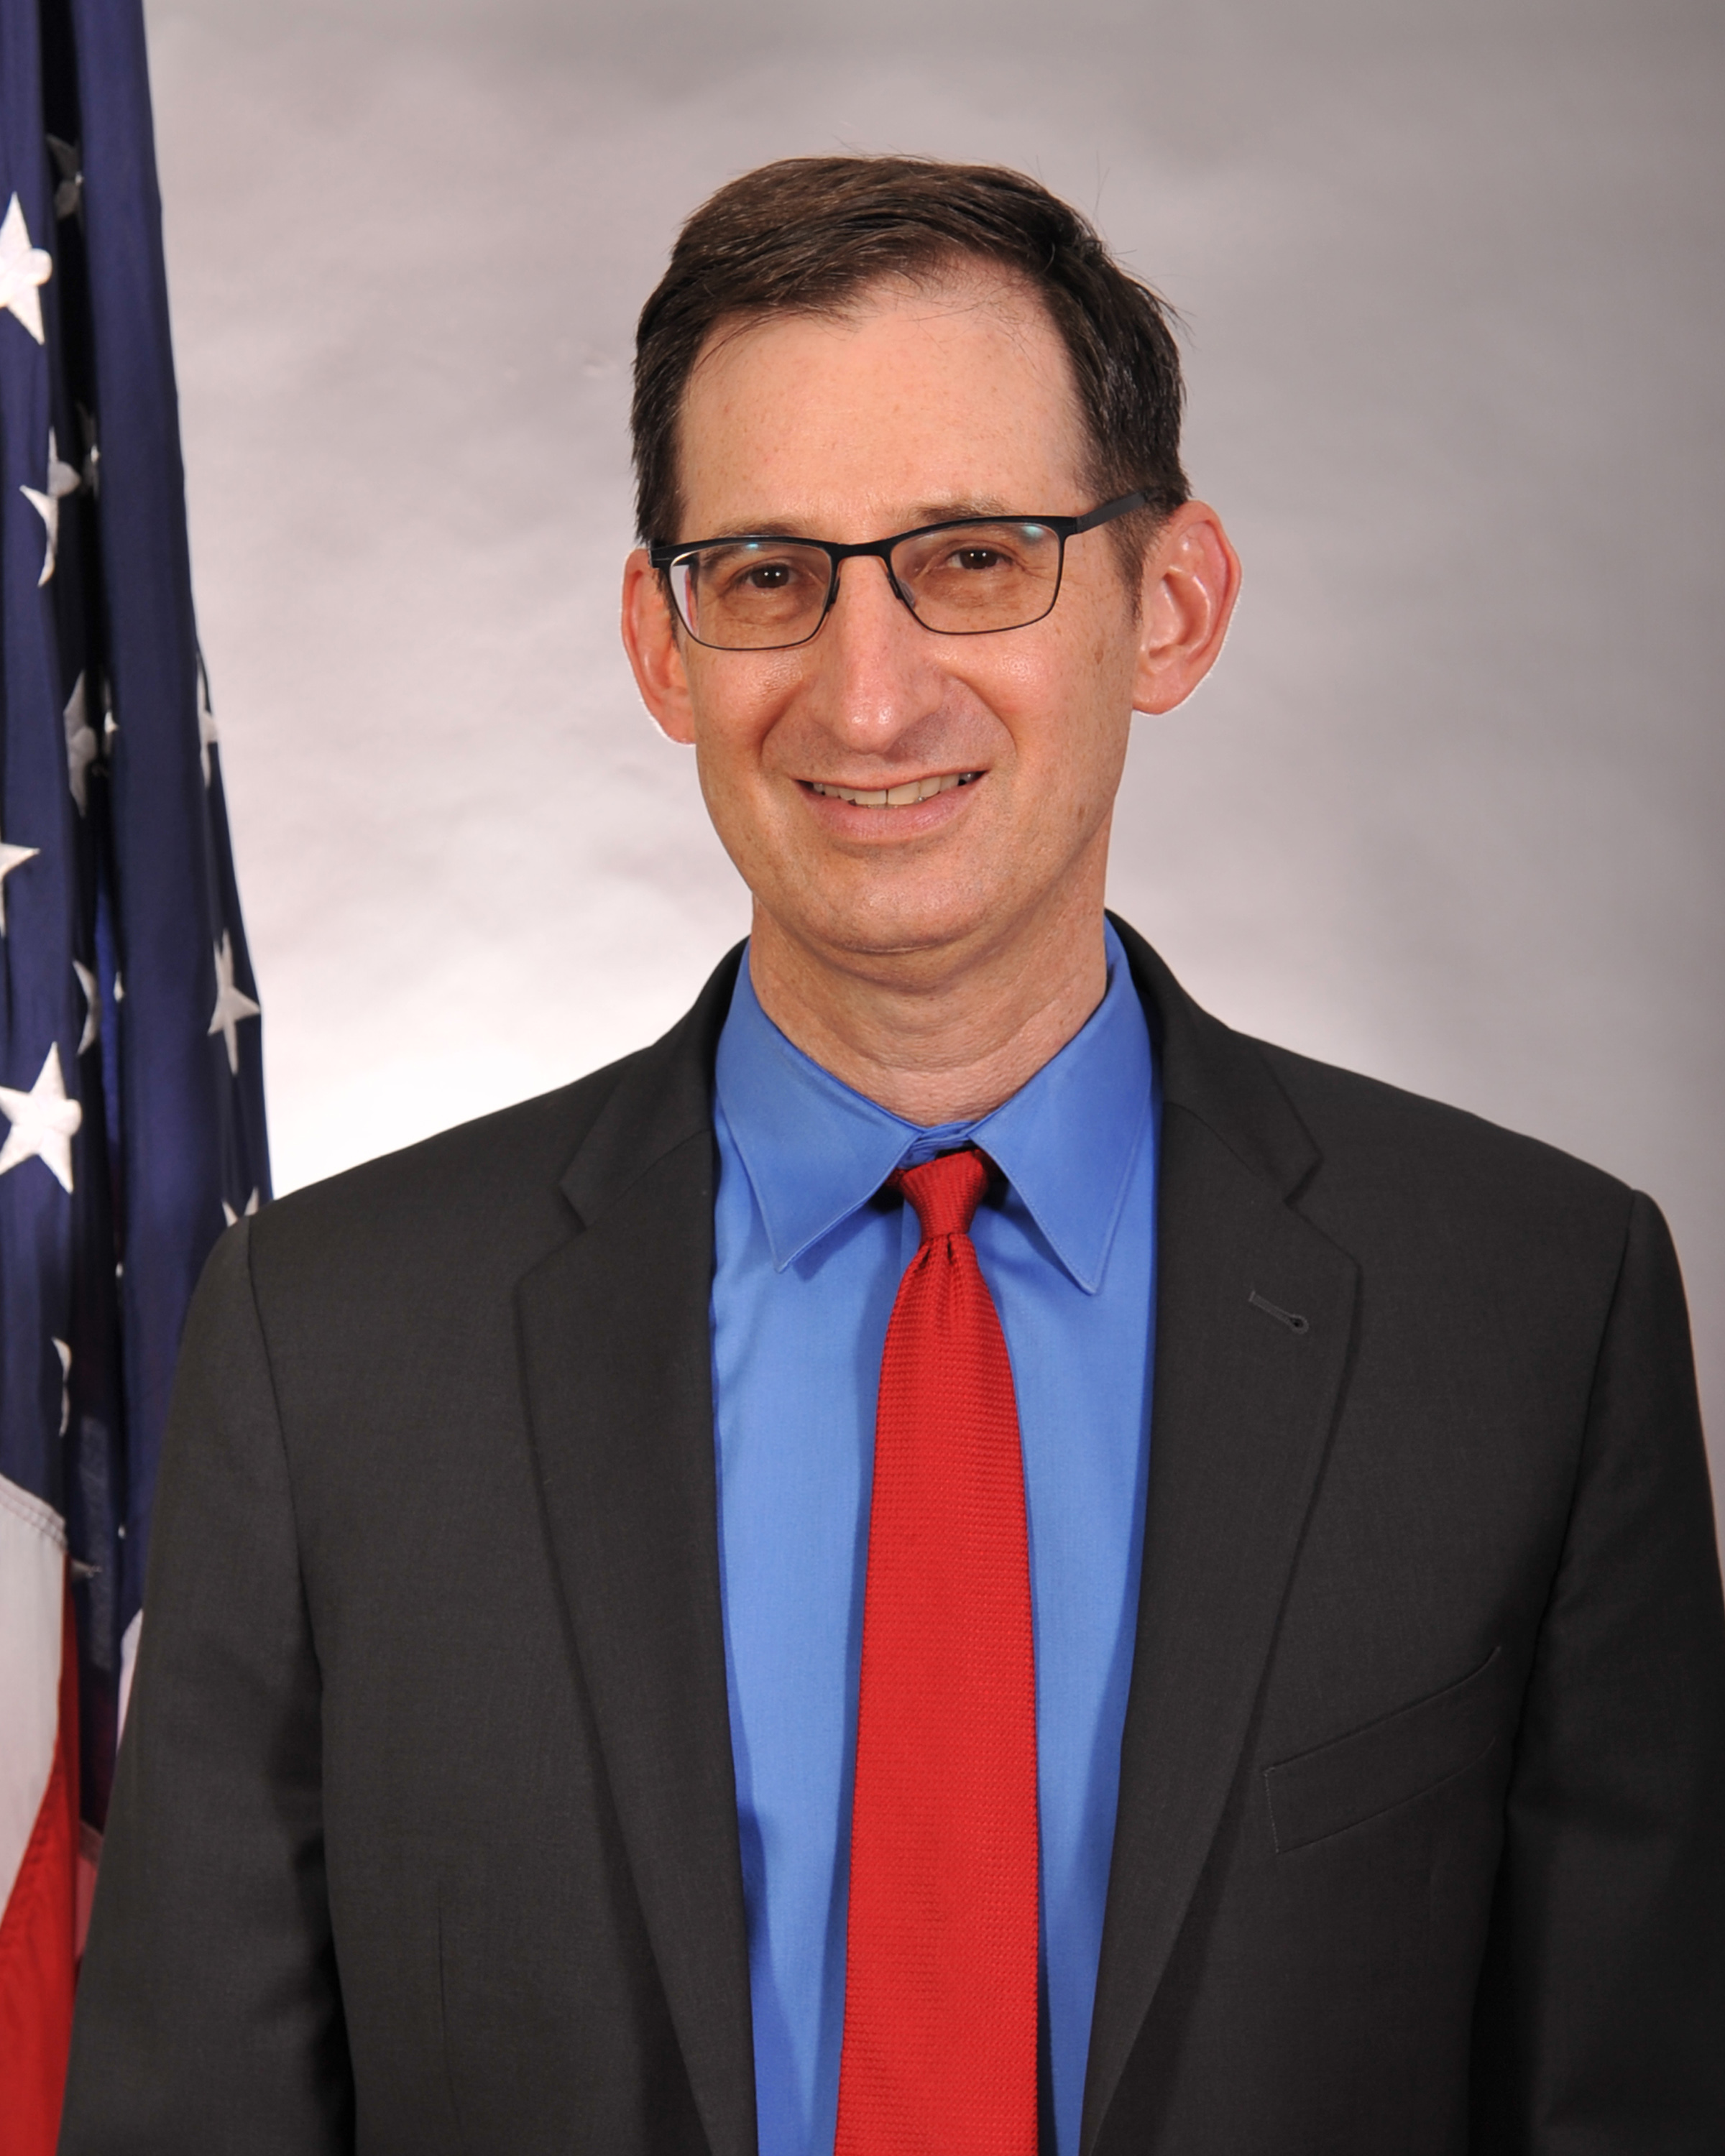 Mr. Scott B. Ticknor has served as the Foreign Policy Advisor (POLAD) for the Combined Joint Task Force-Horn of Africa since September 8, 2016.  In this position, he advises the commanding general and his staff on foreign policy matters related to the command's mission and activities in East Africa.  (Photo courtesy of U.S. Department of State)